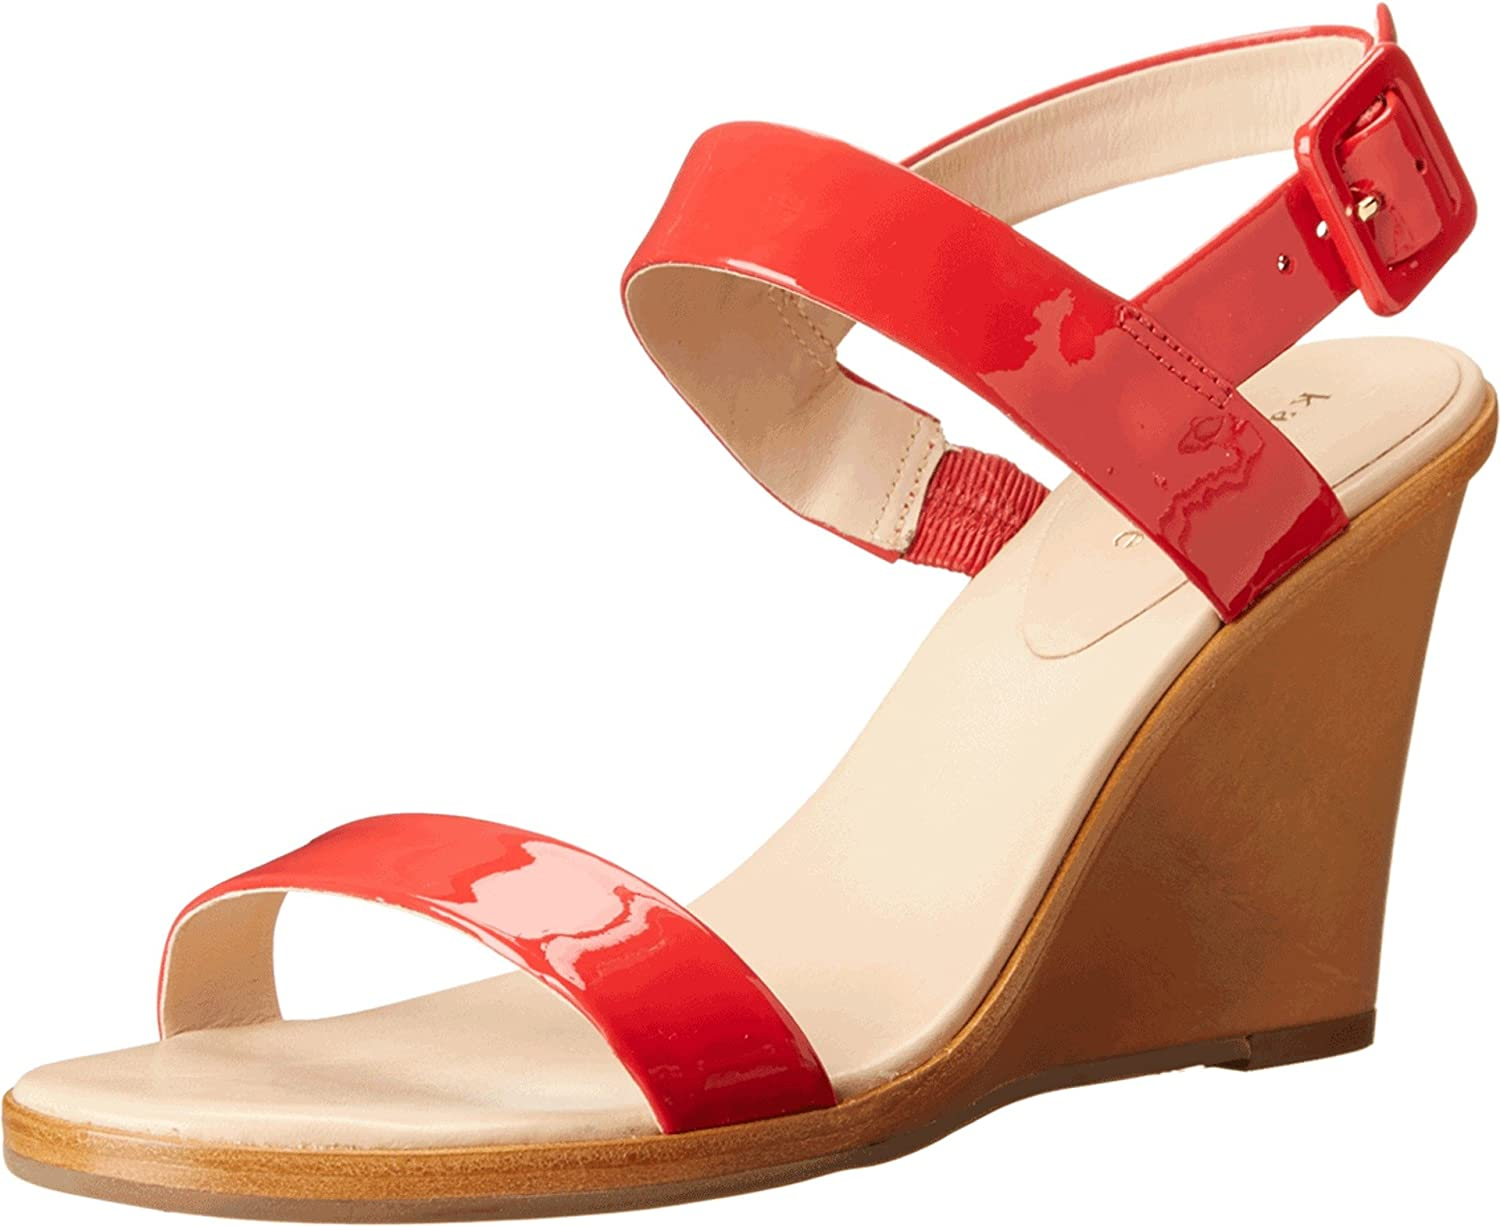 35eed28a5aaf kate spade new york Women s Nice Red Patent Natural Vacchetta Heel Wedge   Buy Online at Low Prices in India - Amazon.in